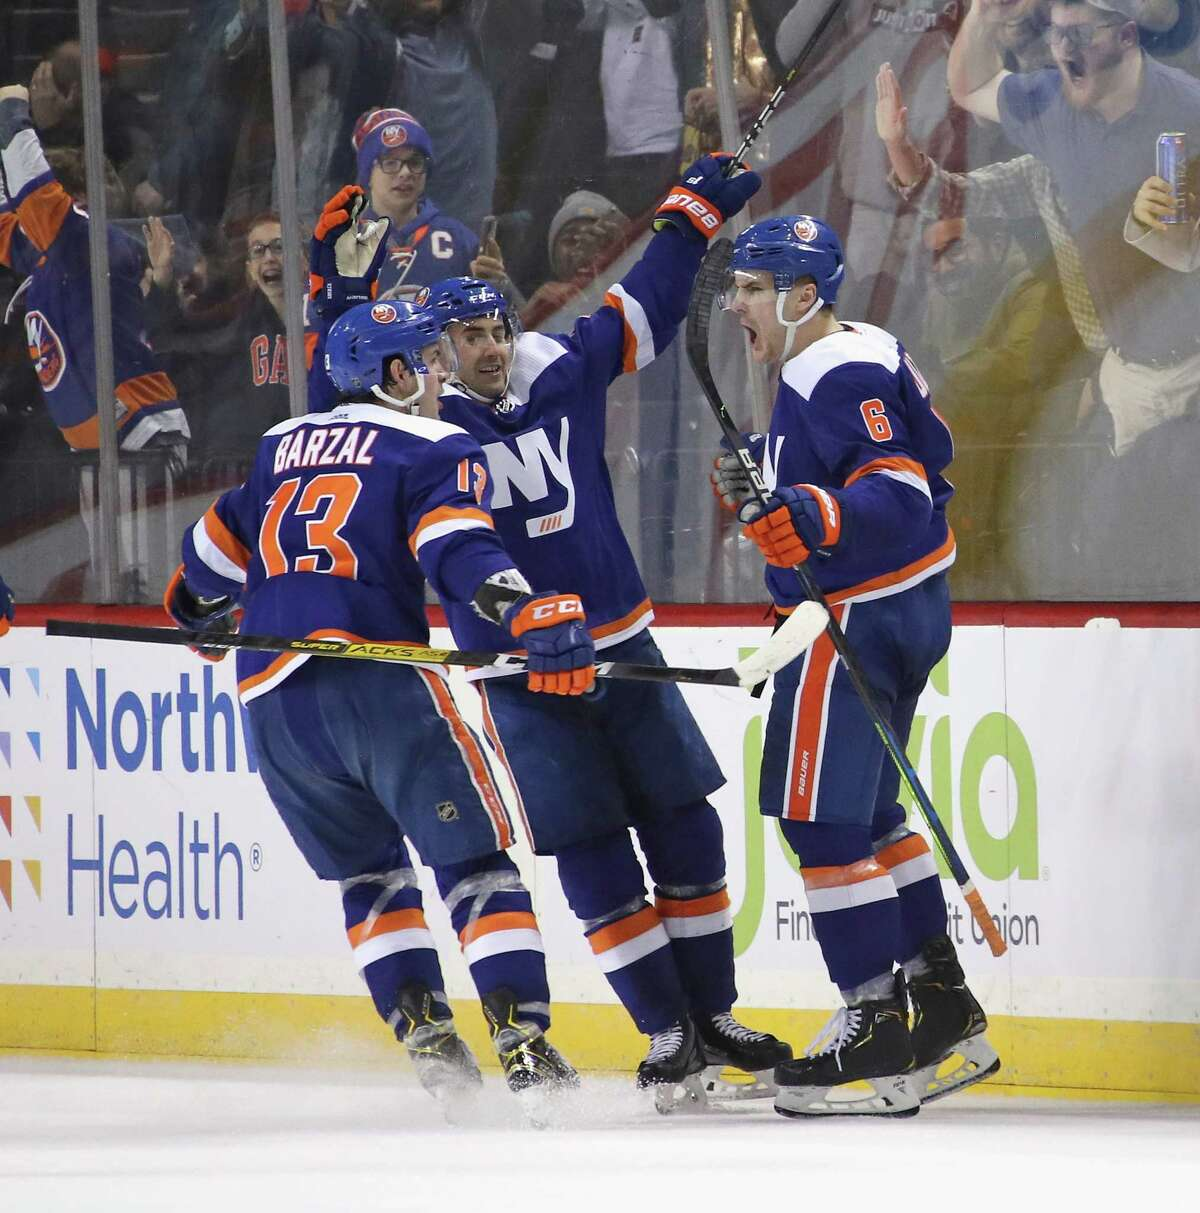 NEW YORK, NEW YORK - FEBRUARY 11: Ryan Pulock #6 of the New York Islanders celebrates his game winning goal at 19:21 of the third period against the Philadelphia Flyers at the Barclays Center on February 11, 2020 in the Brooklyn borough of New York City. The Islanders defeated the Flyers 5-3. (Photo by Bruce Bennett/Getty Images)